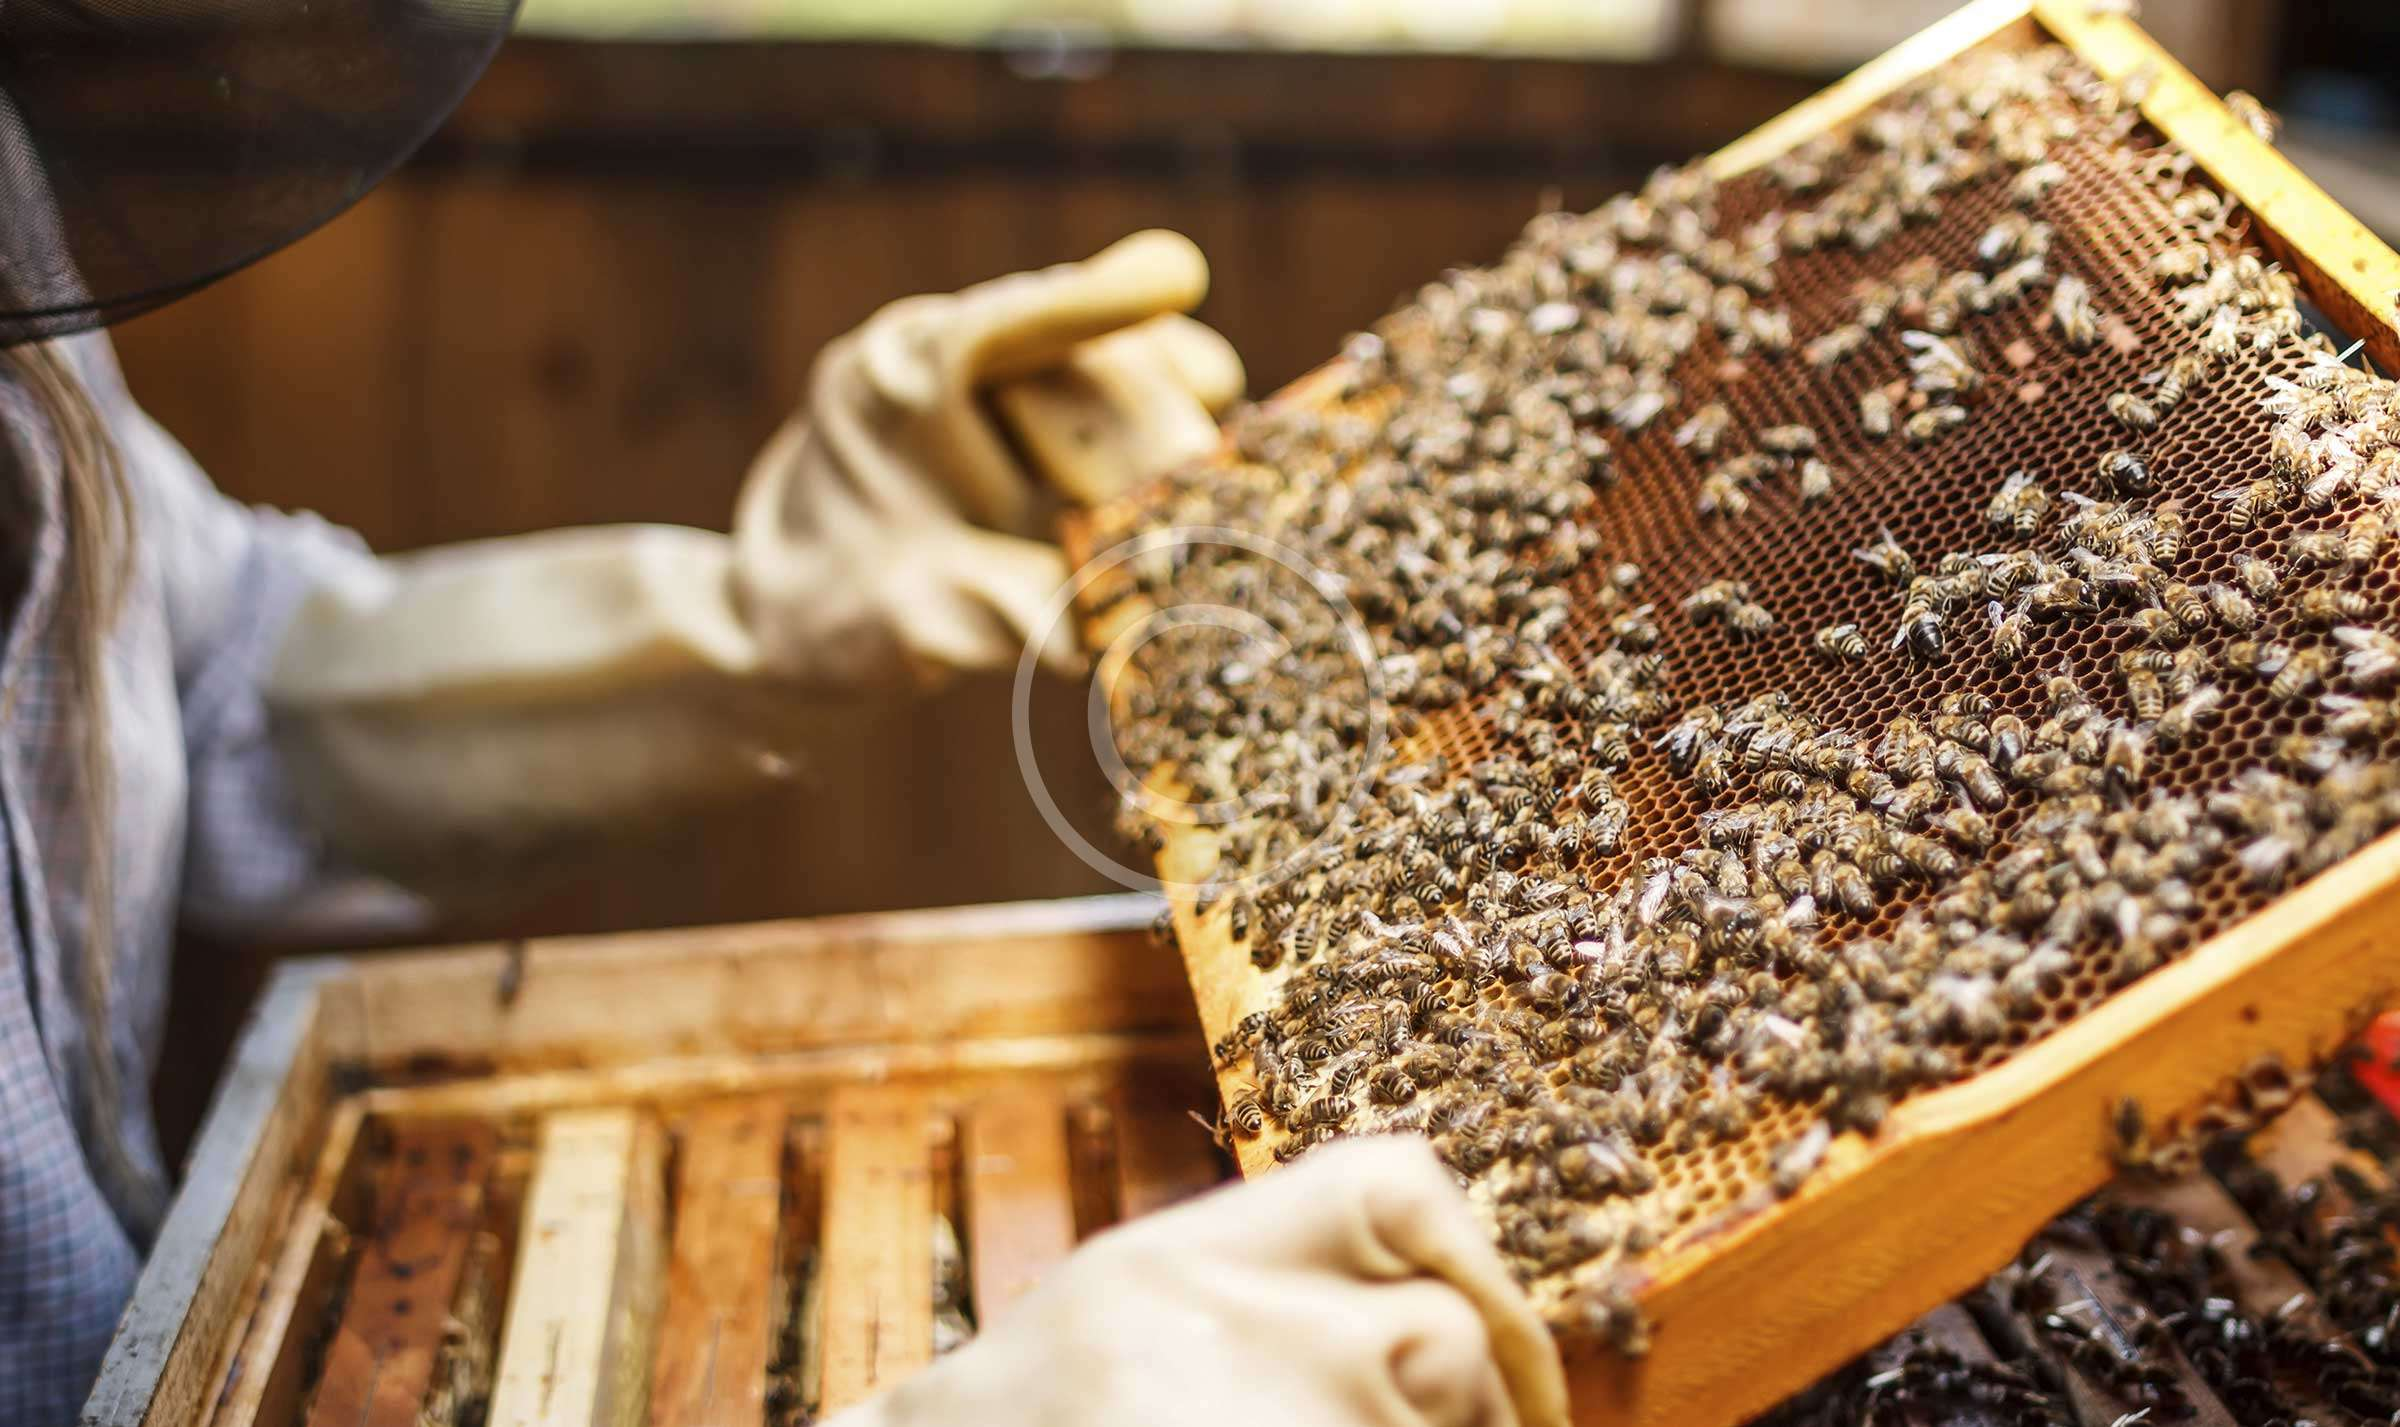 Tutorial: Beekeeping for Beginners. Breeding Bees